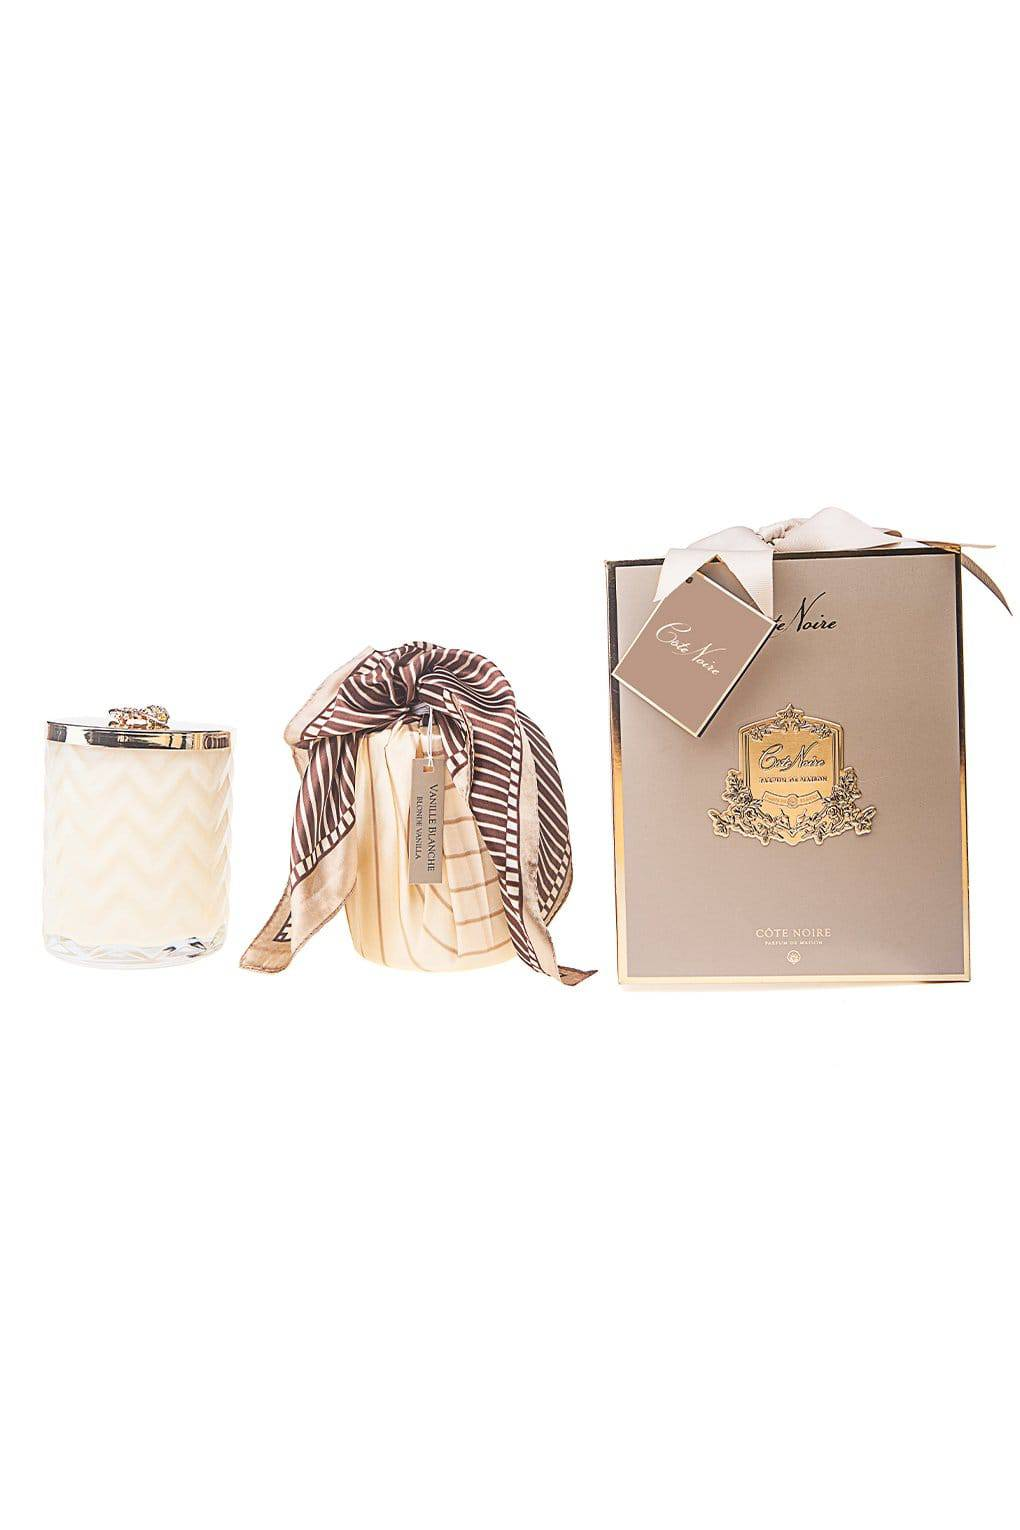 COTE NOIRE Cream Herringbone Candle with Scarf - Golden Bee lid - Blond Vanilla - Magpie Style